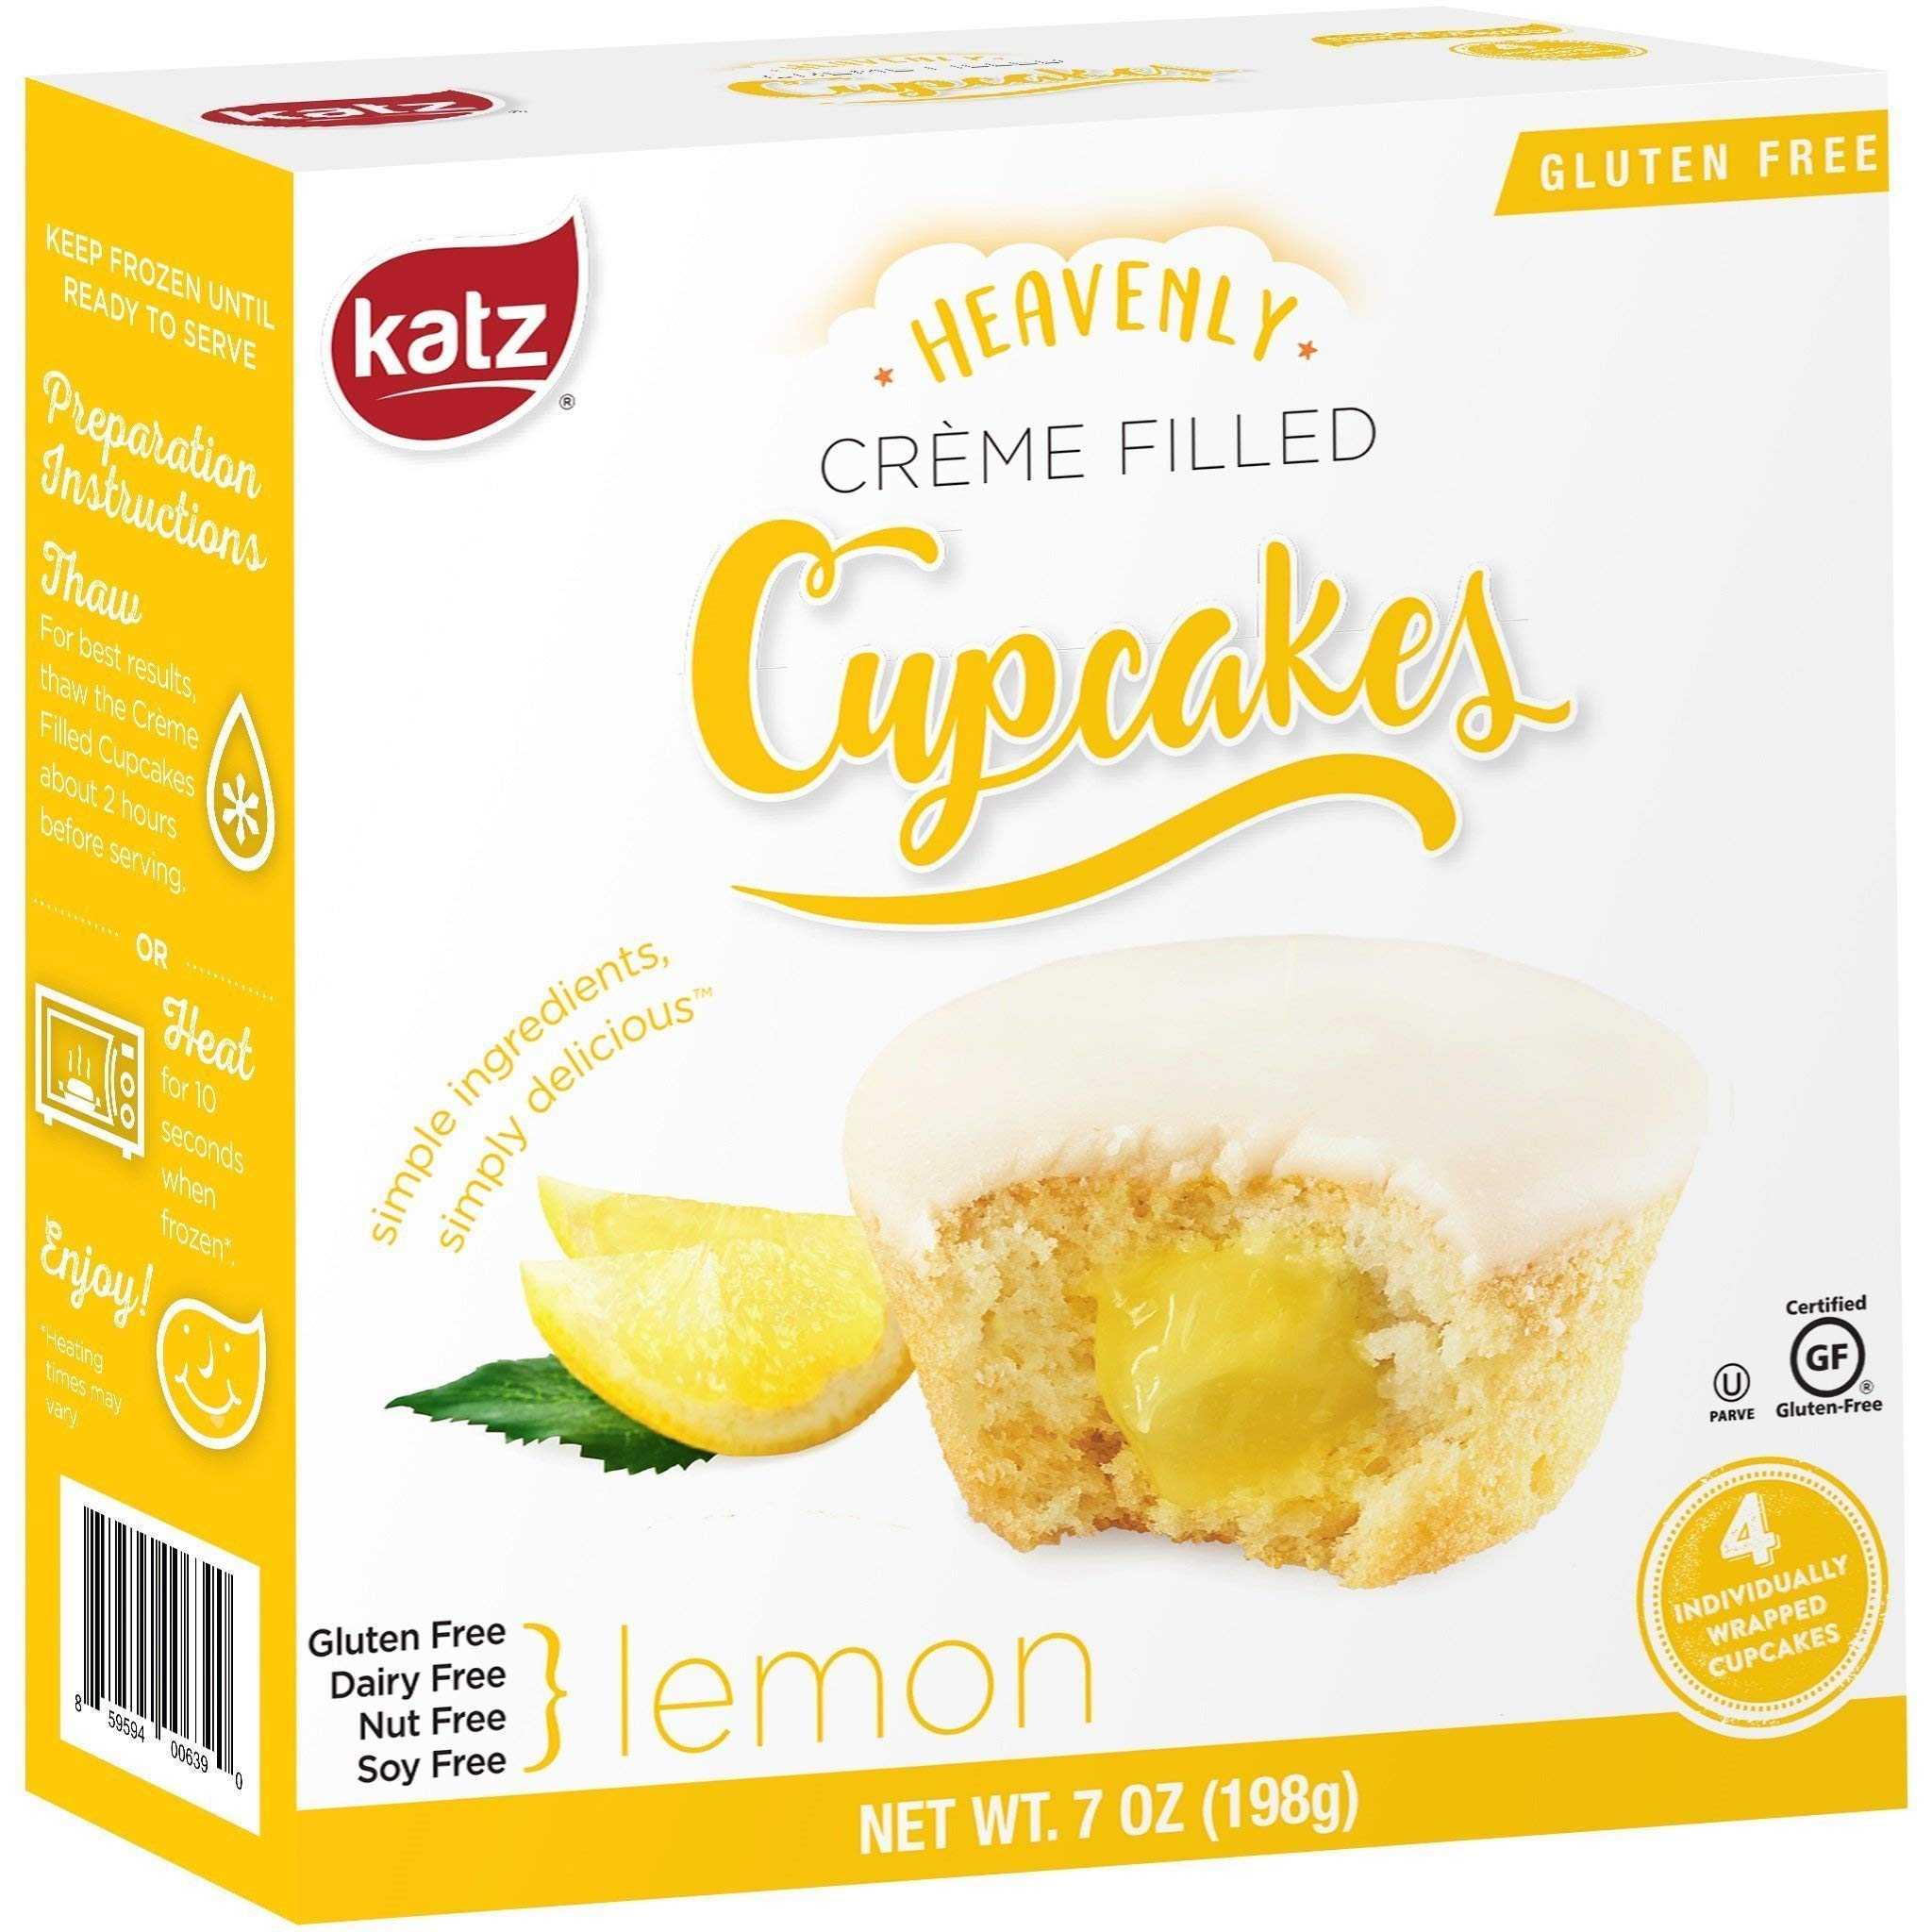 Katz Gluten Free Lemon Crème Filled Cupcakes | Dairy, Nut, Soy and Gluten Free | Kosher (6 Packs of 4 Crème Cupcakes, 7 Ounce Each) by Katz Gluten Free